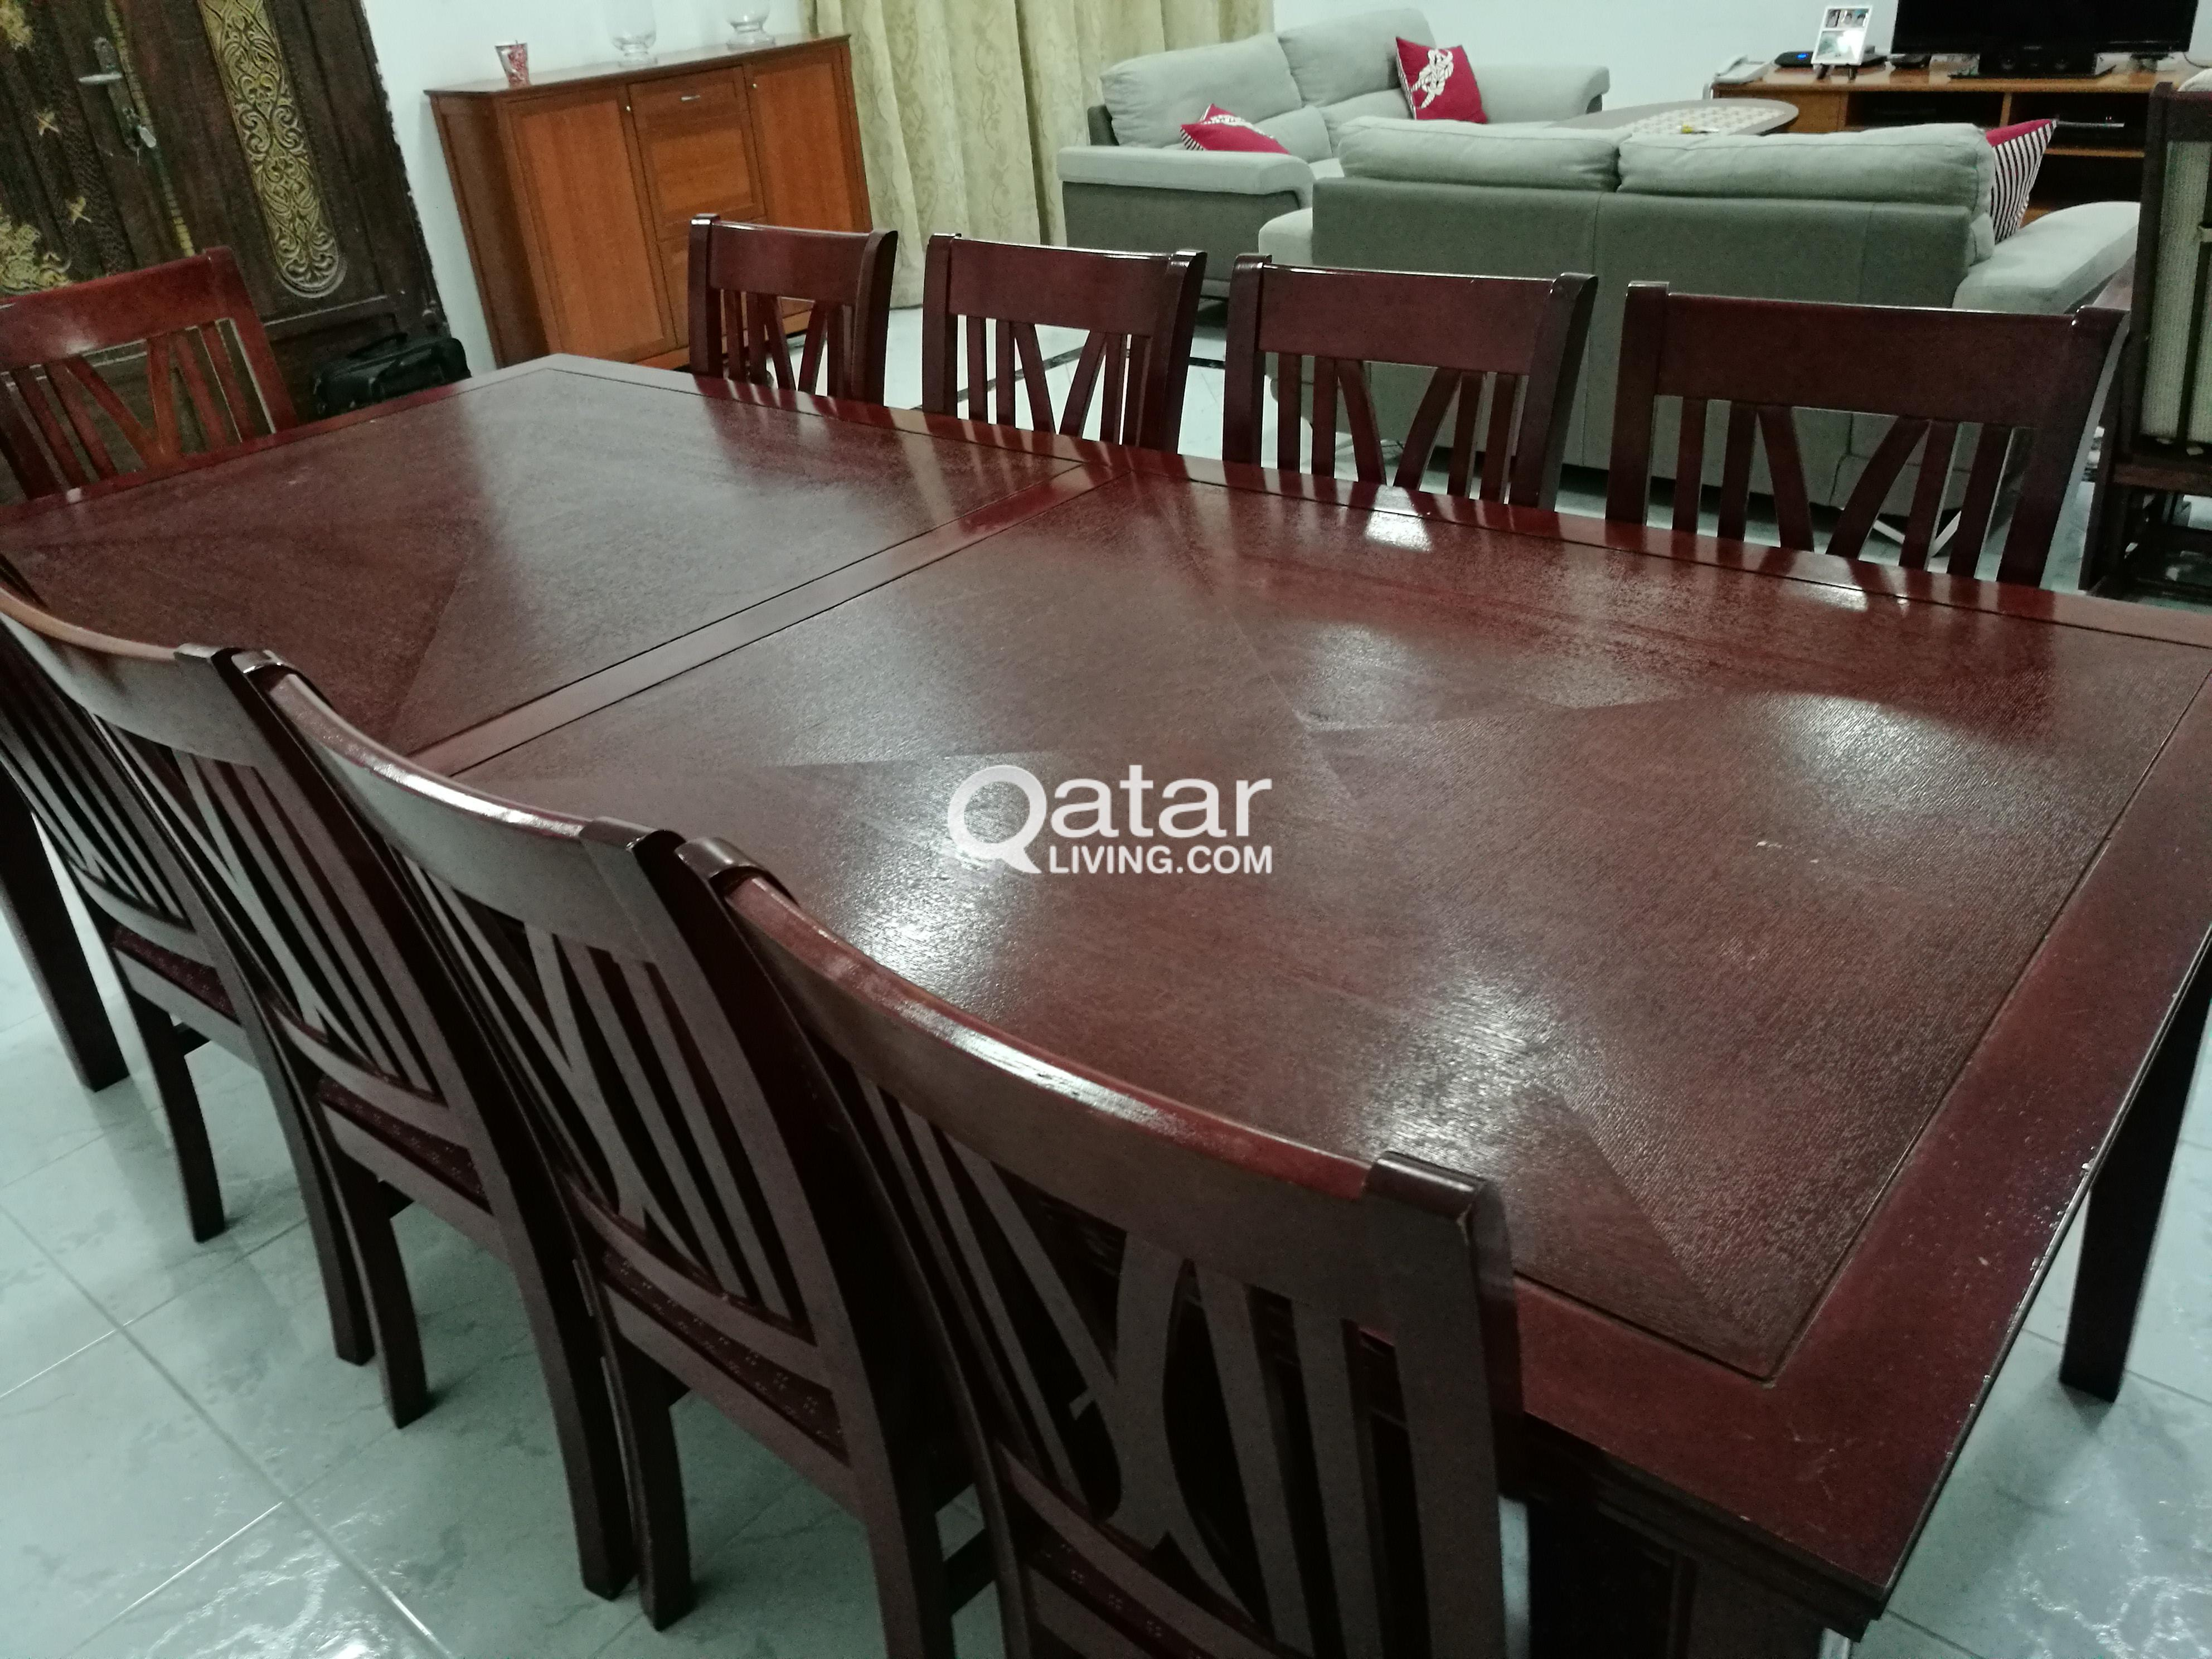 10 Seater Dining Table For Sale Qatar Living